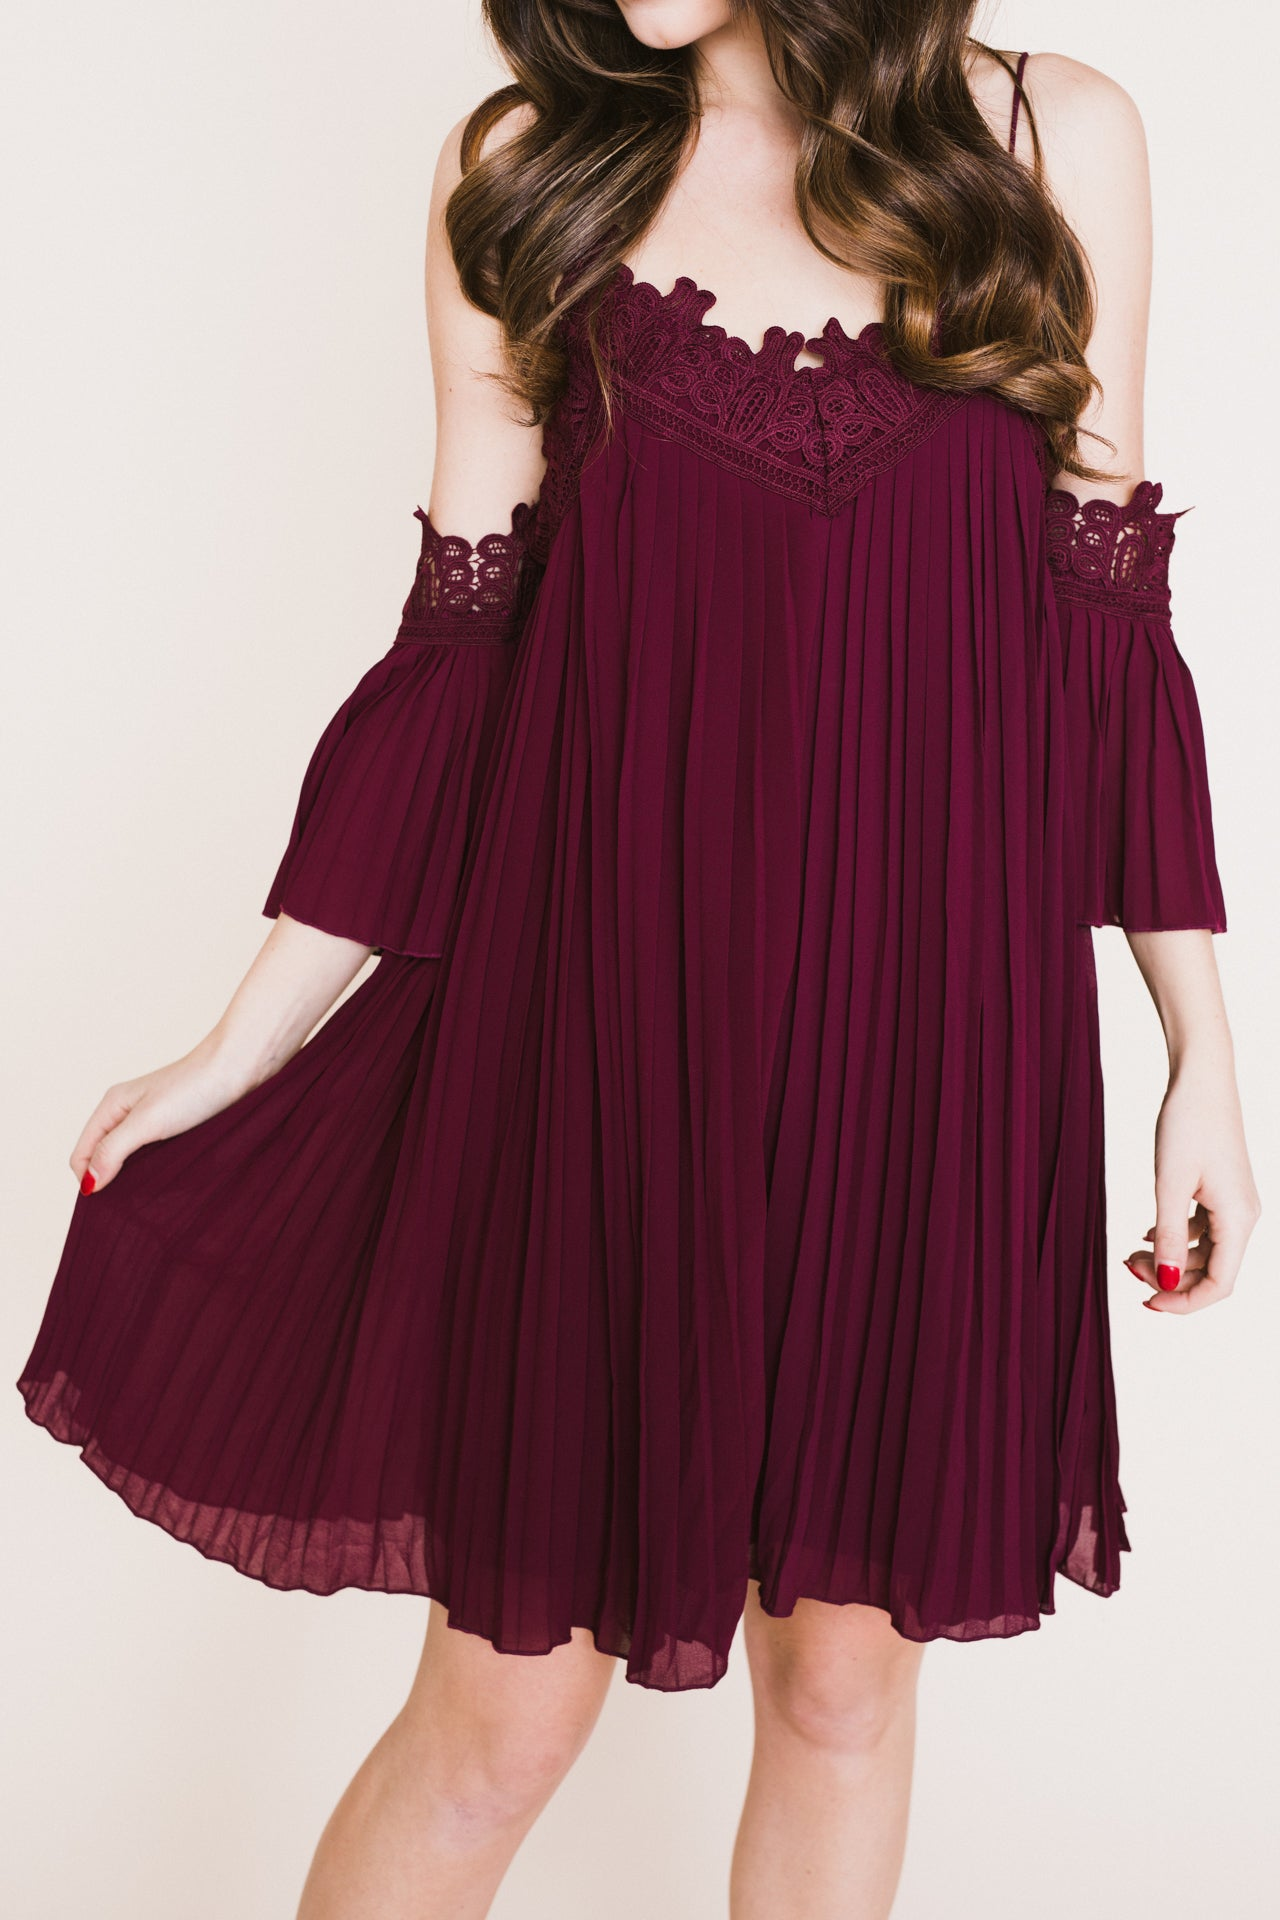 Rosella Pleated Dress - Burgundy *FINAL SALE*